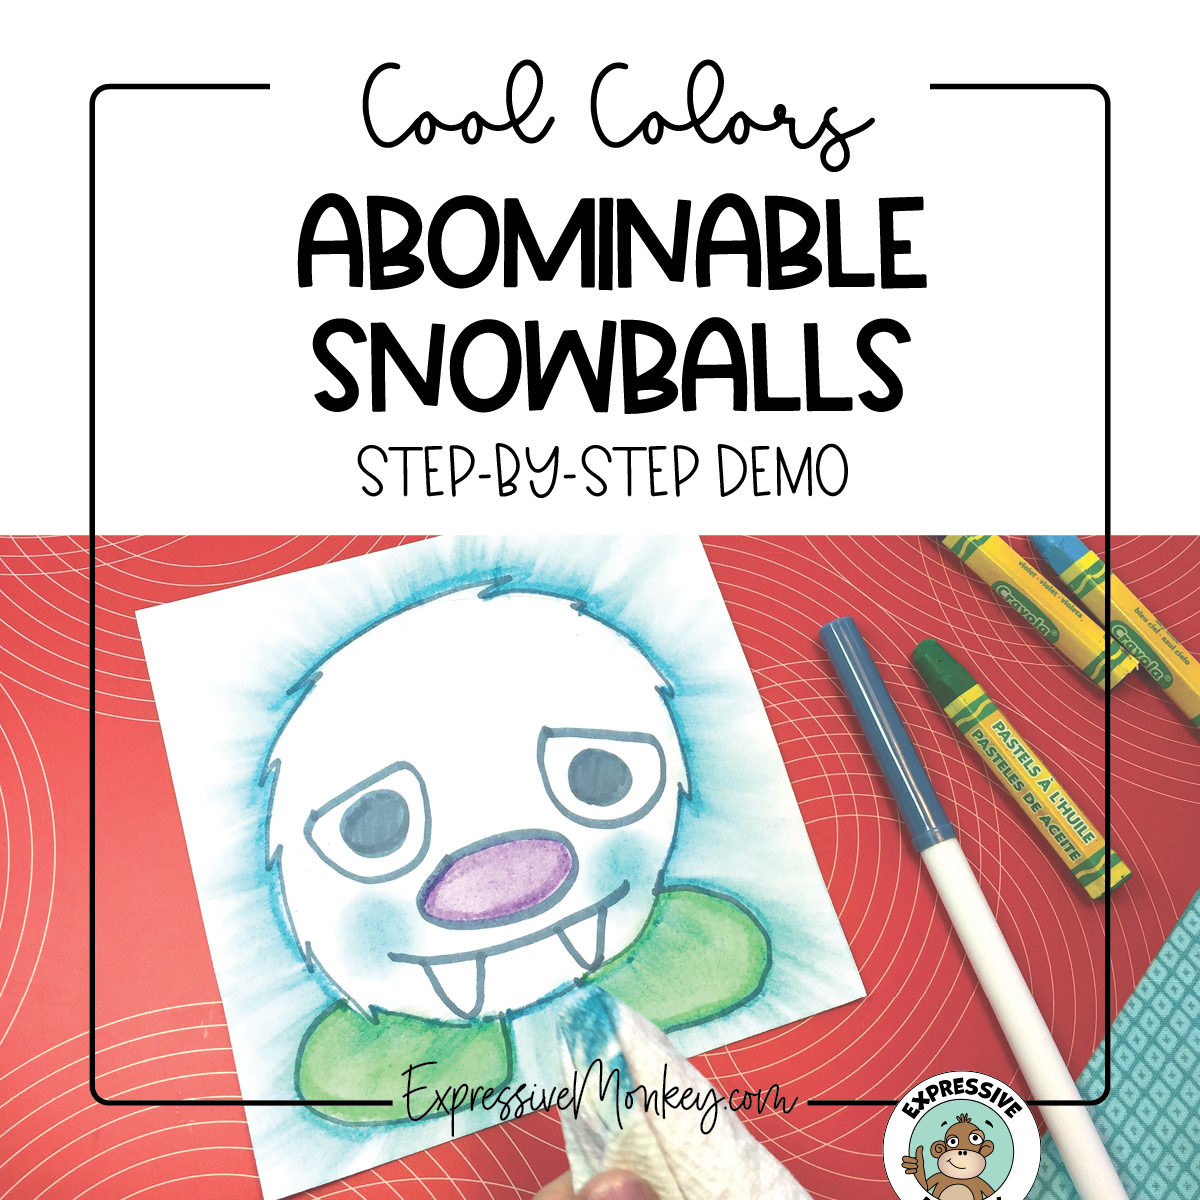 """A snowball with feet and a cute monster-like face. The snowball was outlined with oil pastel and the oil pastel is smeared to look like the snowball is flying at you.  The text says, """"Cool Colors - Abominable Snowballs Step-by-Step Demo."""""""